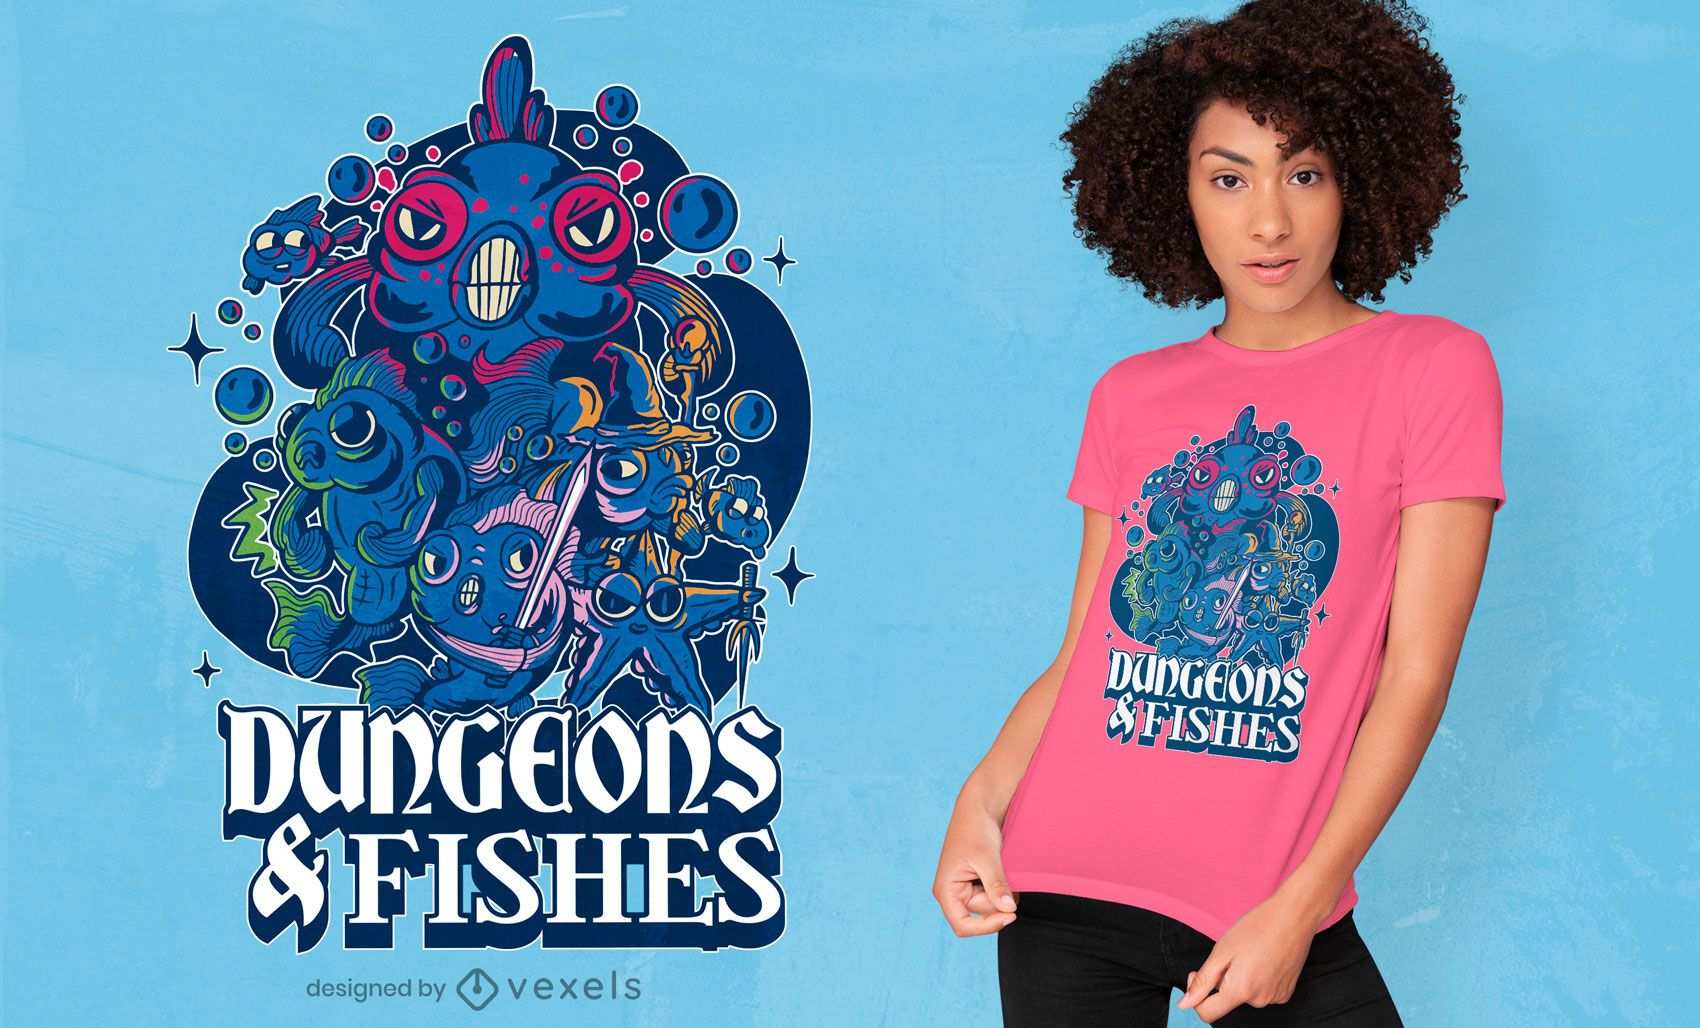 Dungeons and fishes t-shirt design